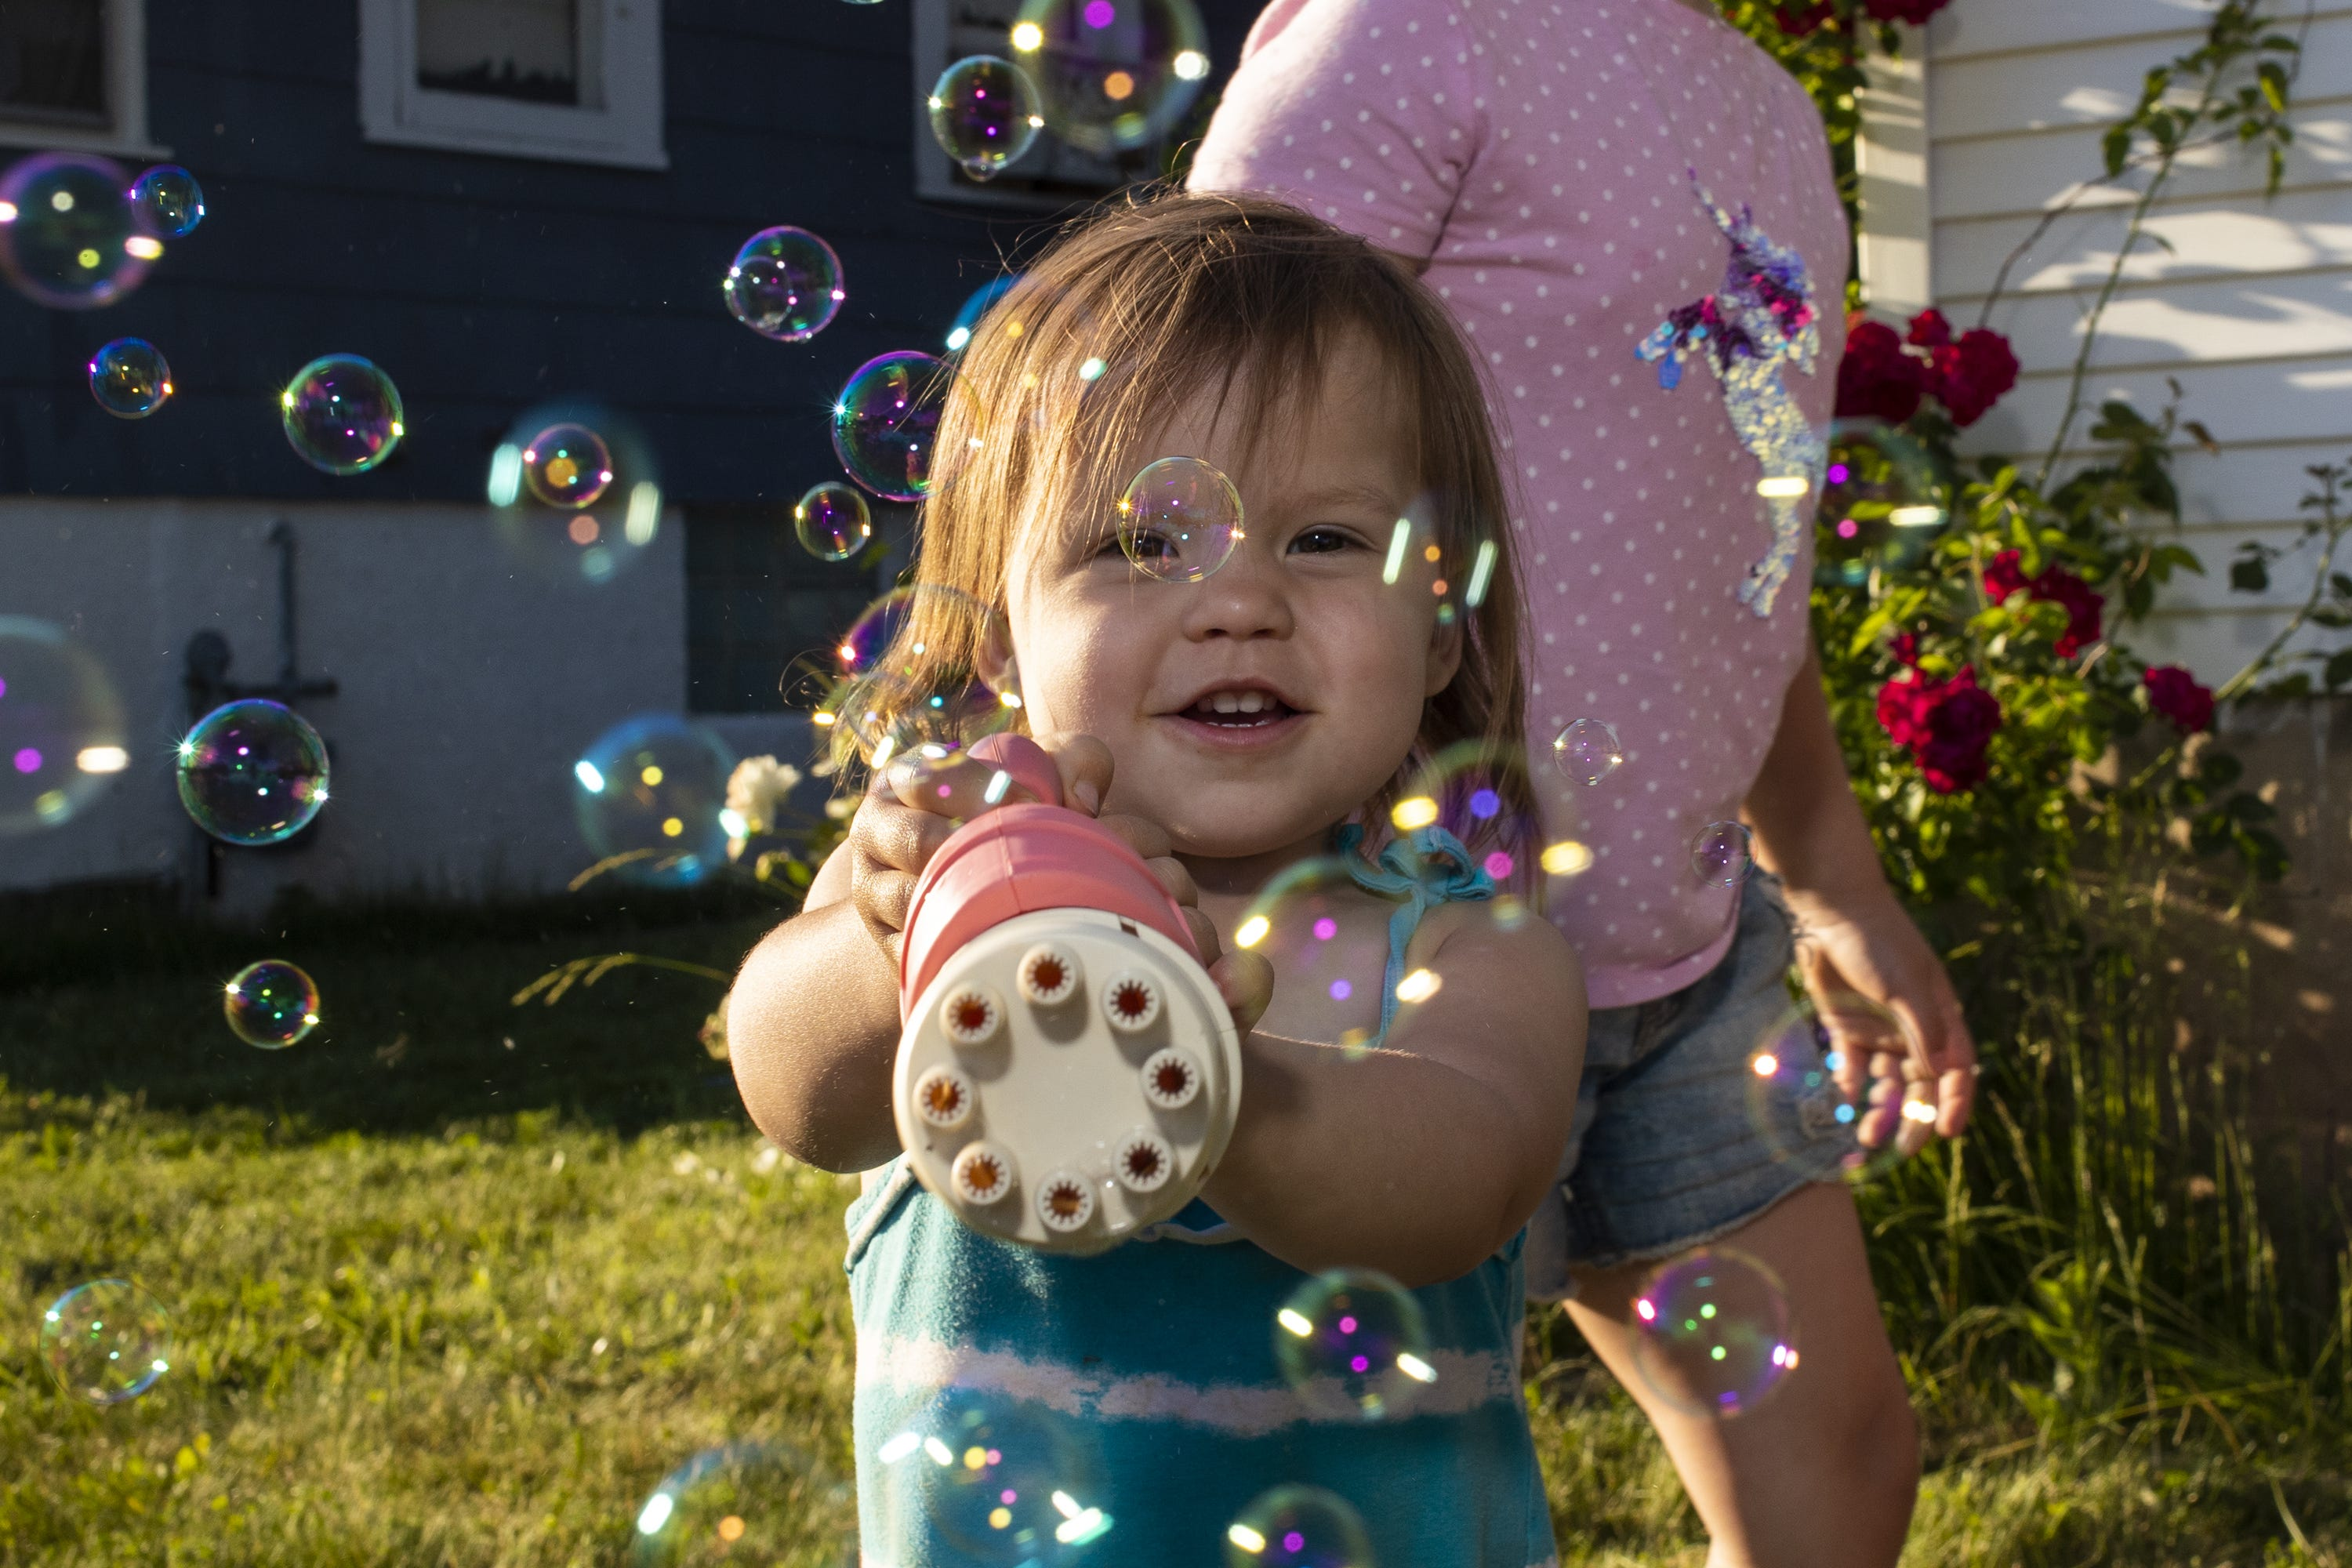 Jaleesa Gray's daughter plays with bubbles outside her home, Tuesday, June 15, 2021, Green Bay, Wis. Samantha Madar/USA TODAY NETWORK-Wisconsin